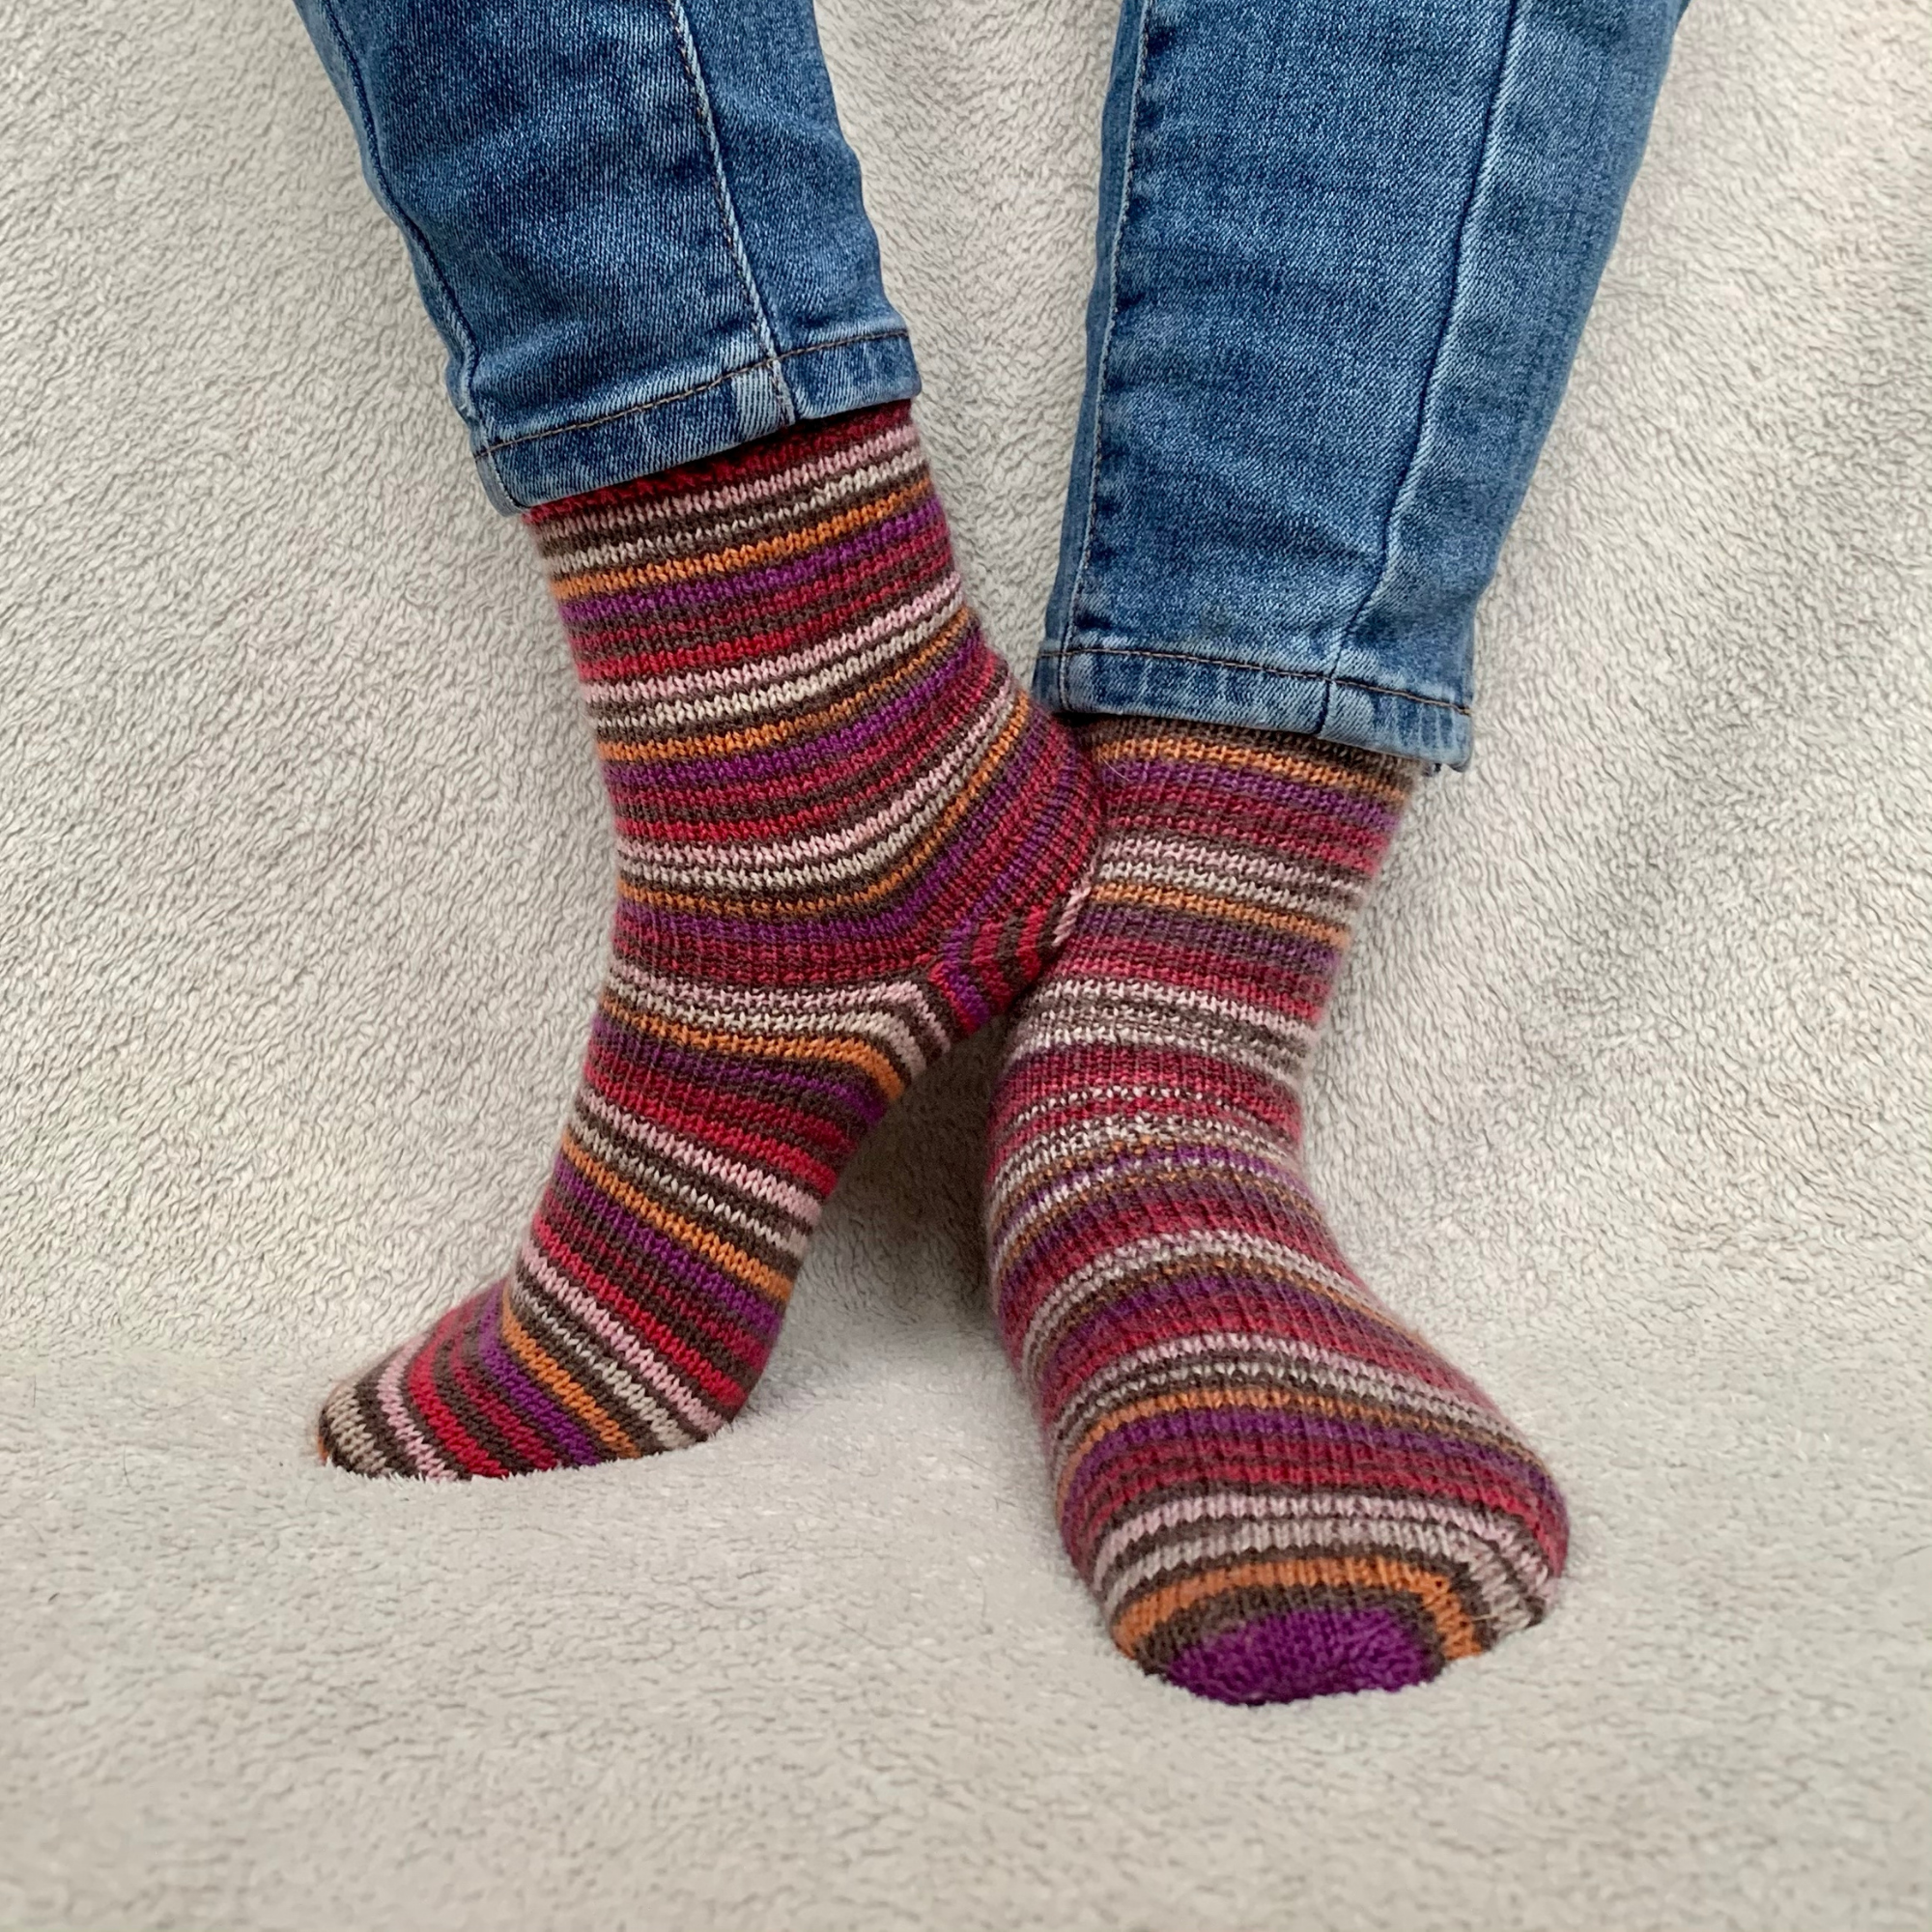 Keep It Simple socks. Striped socks in pinks and browns. Modelled with one foot leaning against the other against a cream background